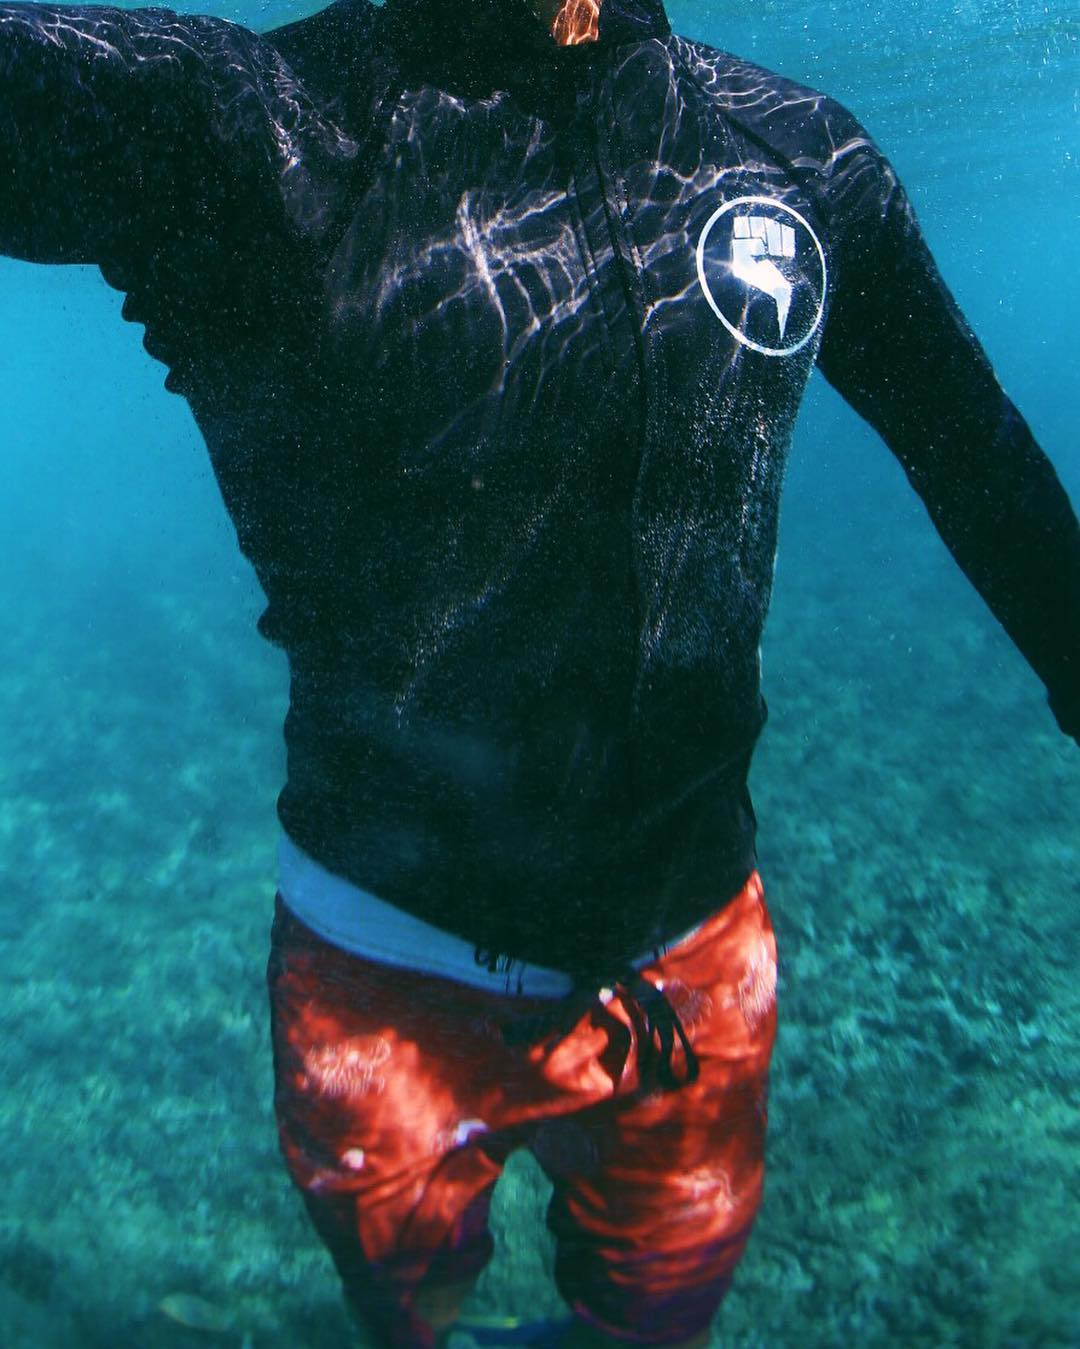 How all #ootd posts should look | Super Skin 2.1 wetsuit top paired with the noRep x @dcasted boardshorts. Get the look at norepboardshorts.com #inspiredboardshorts